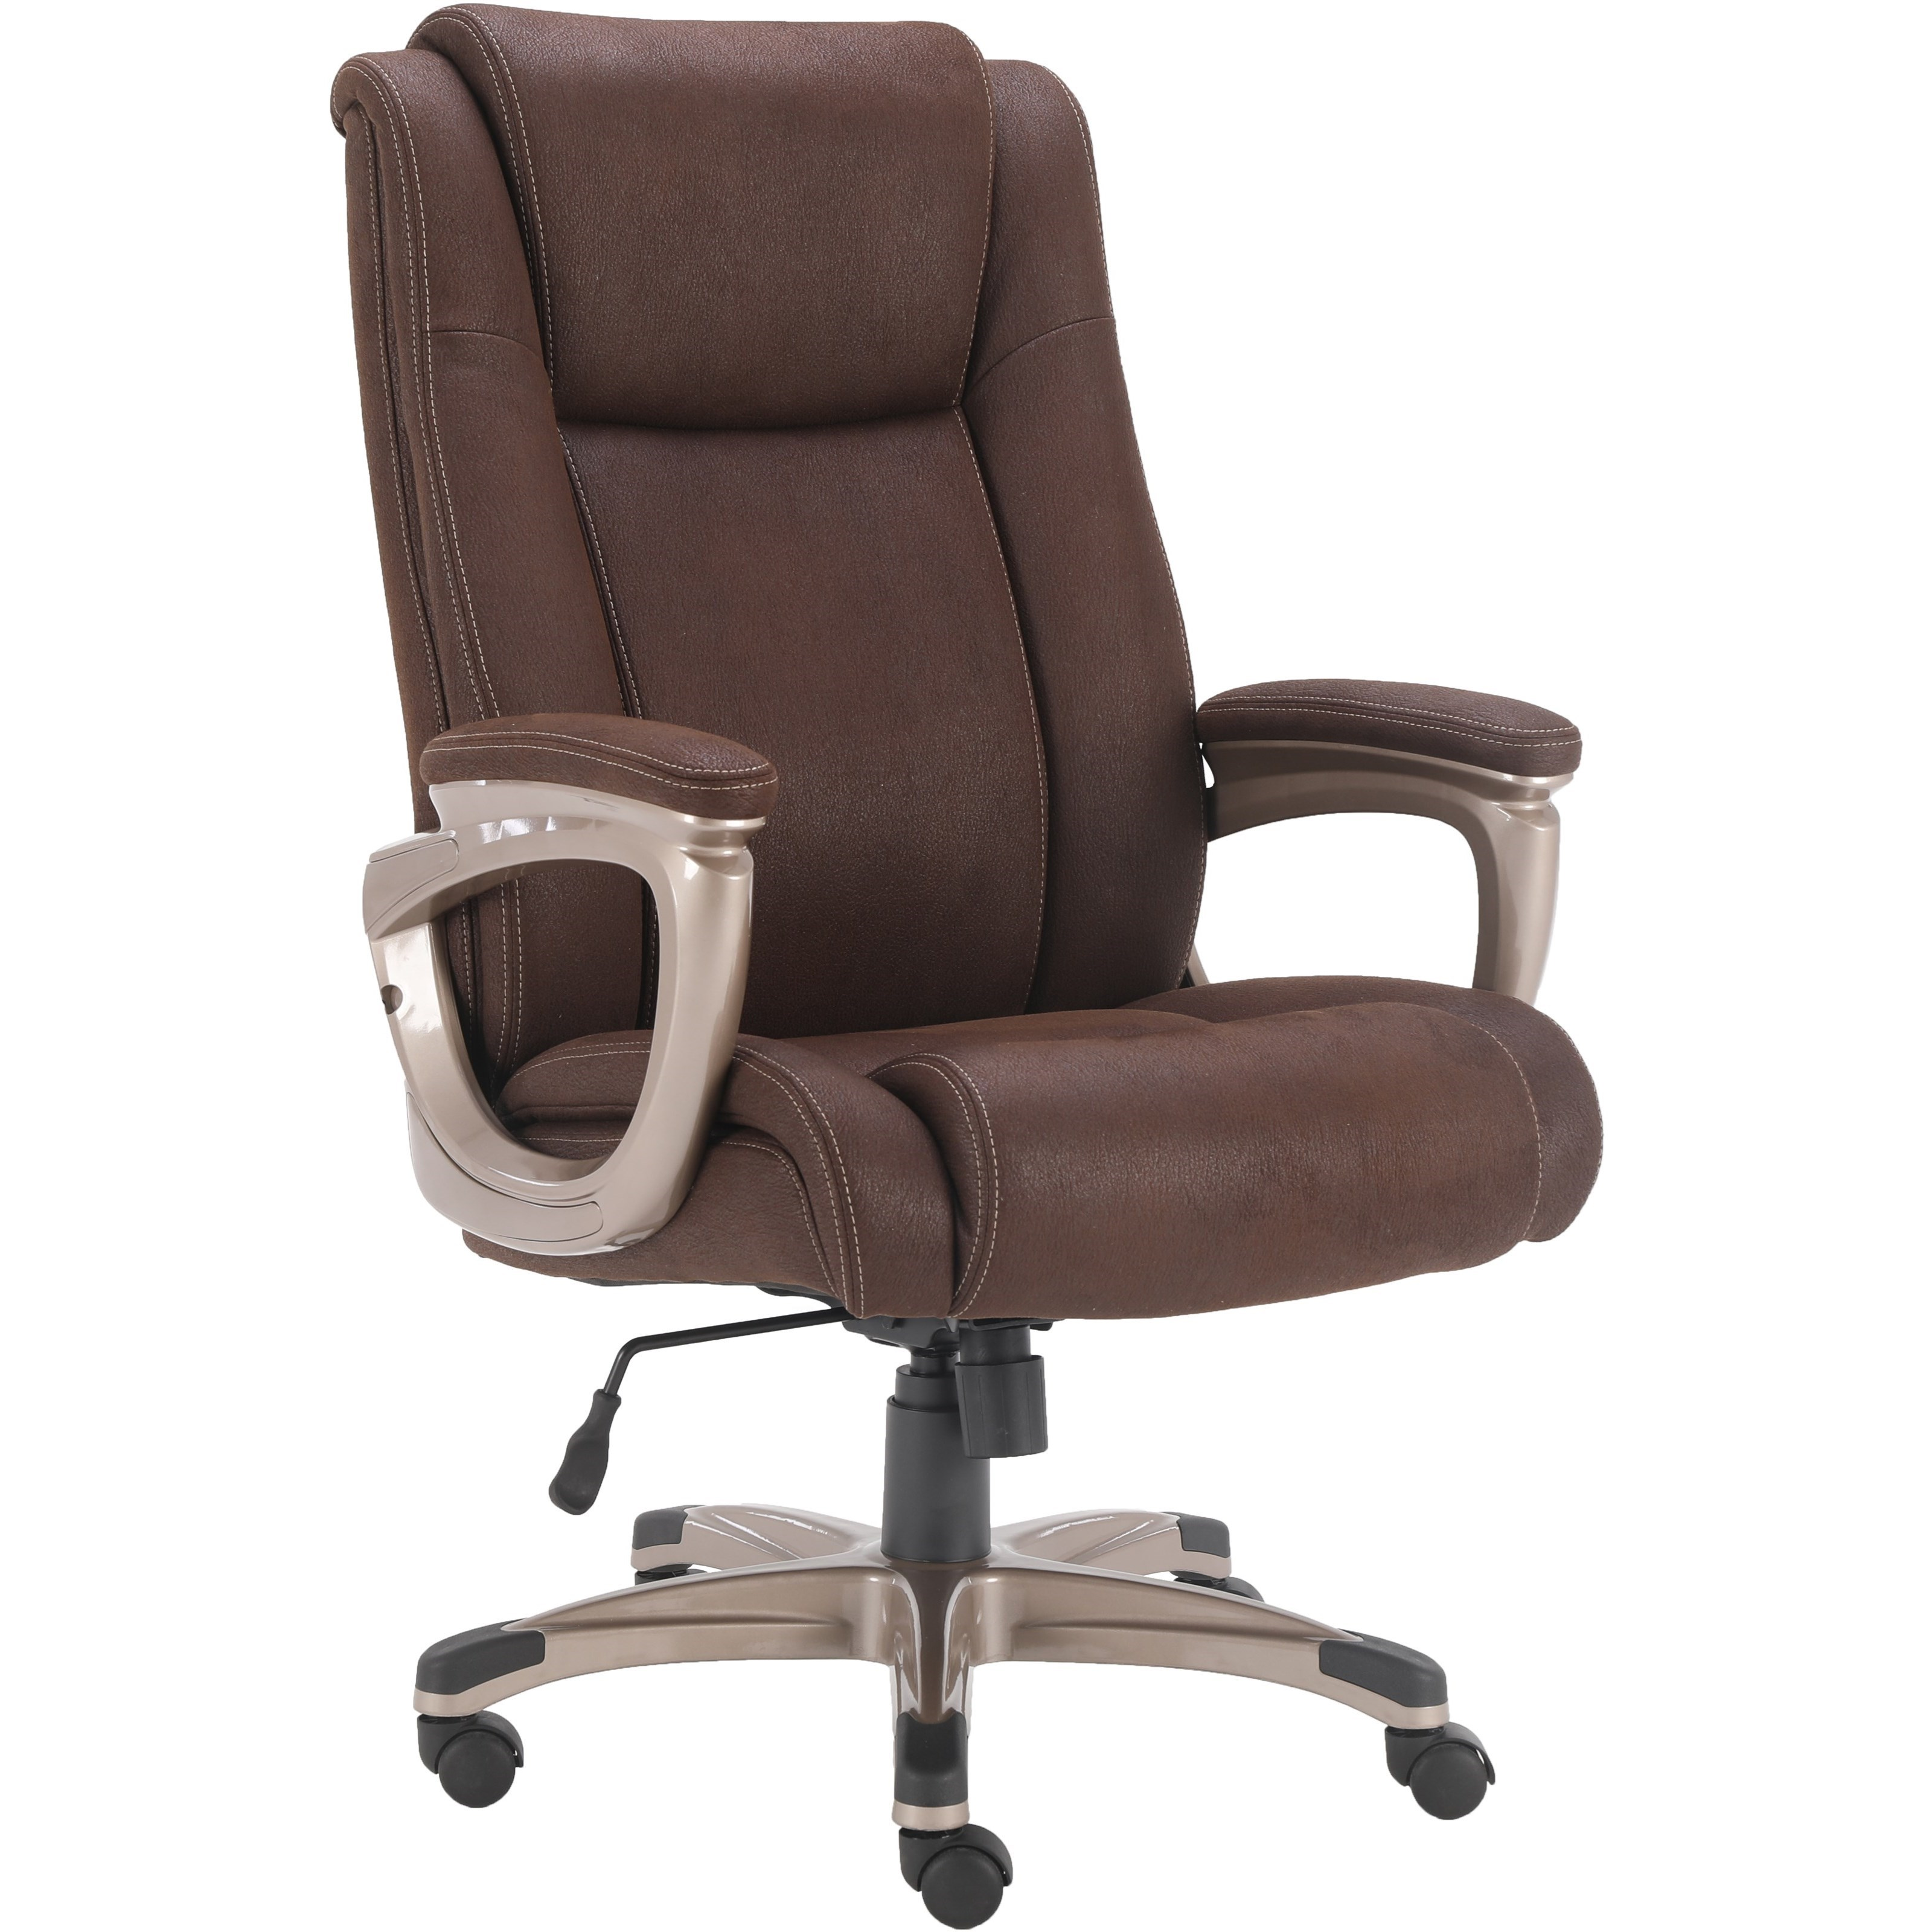 Desk Chairs Heavy Duty Desk Chair by Parker Living at Darvin Furniture